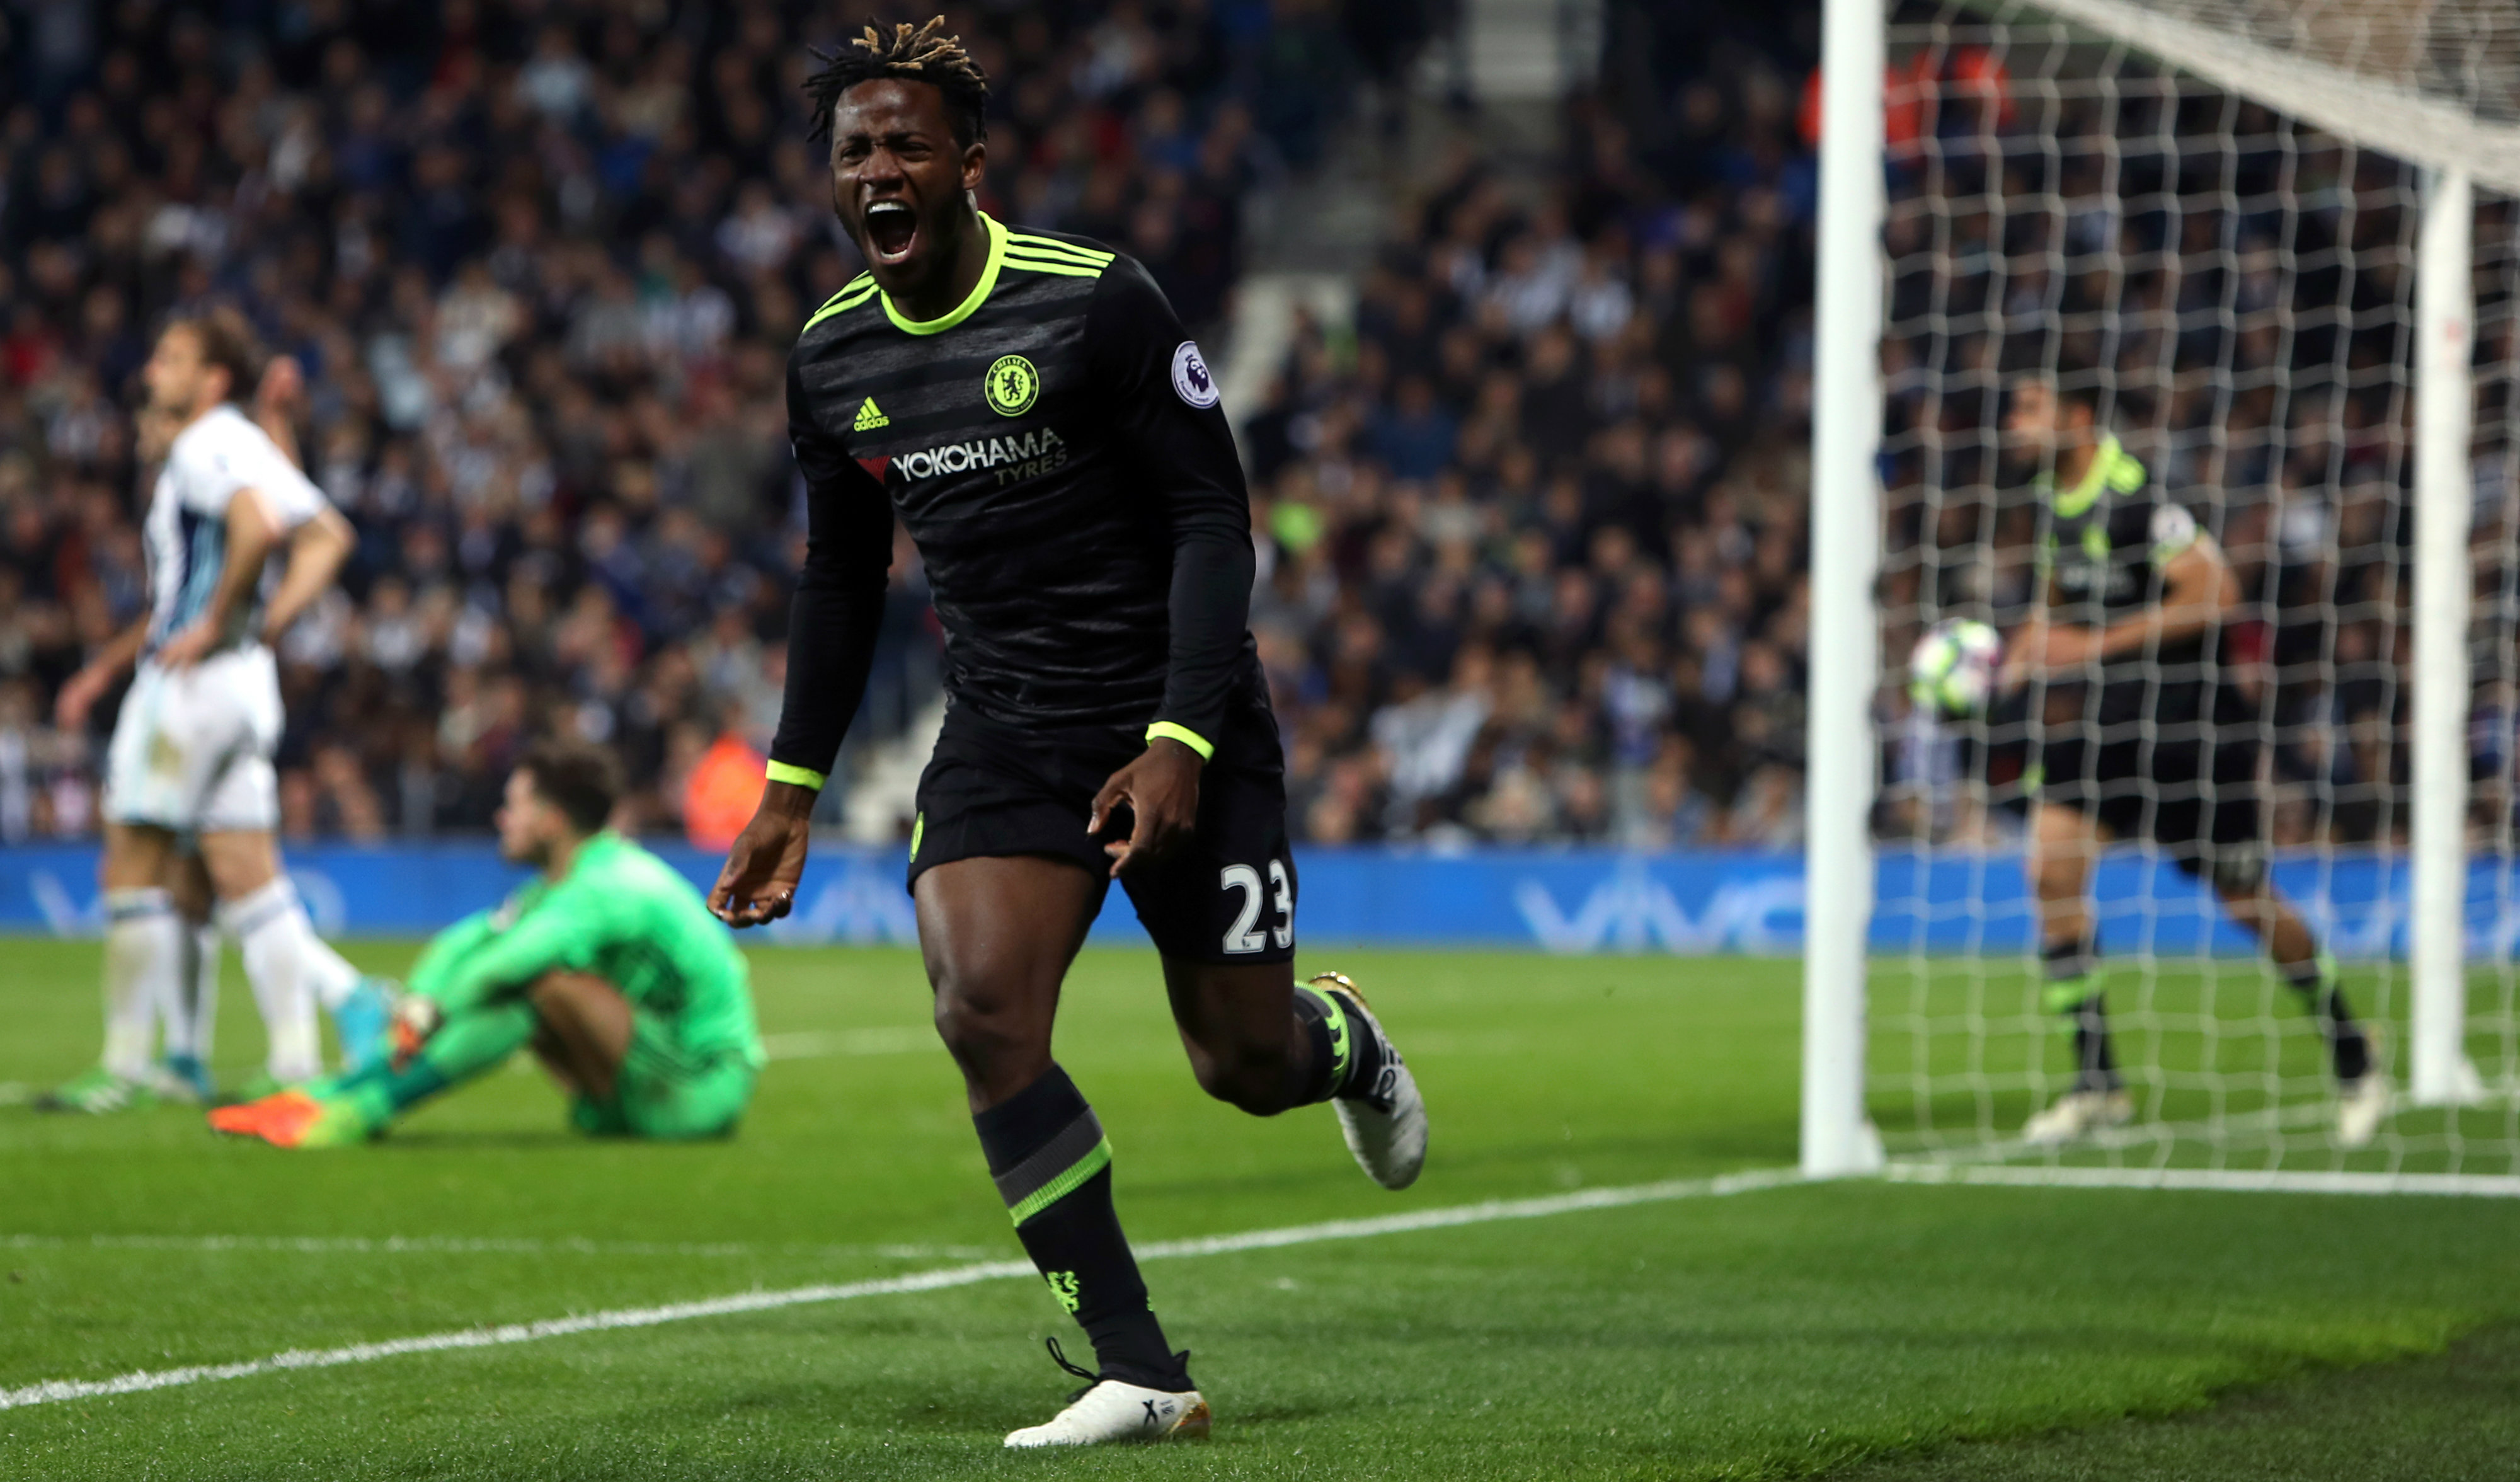 West Brom v Chelsea player ratings